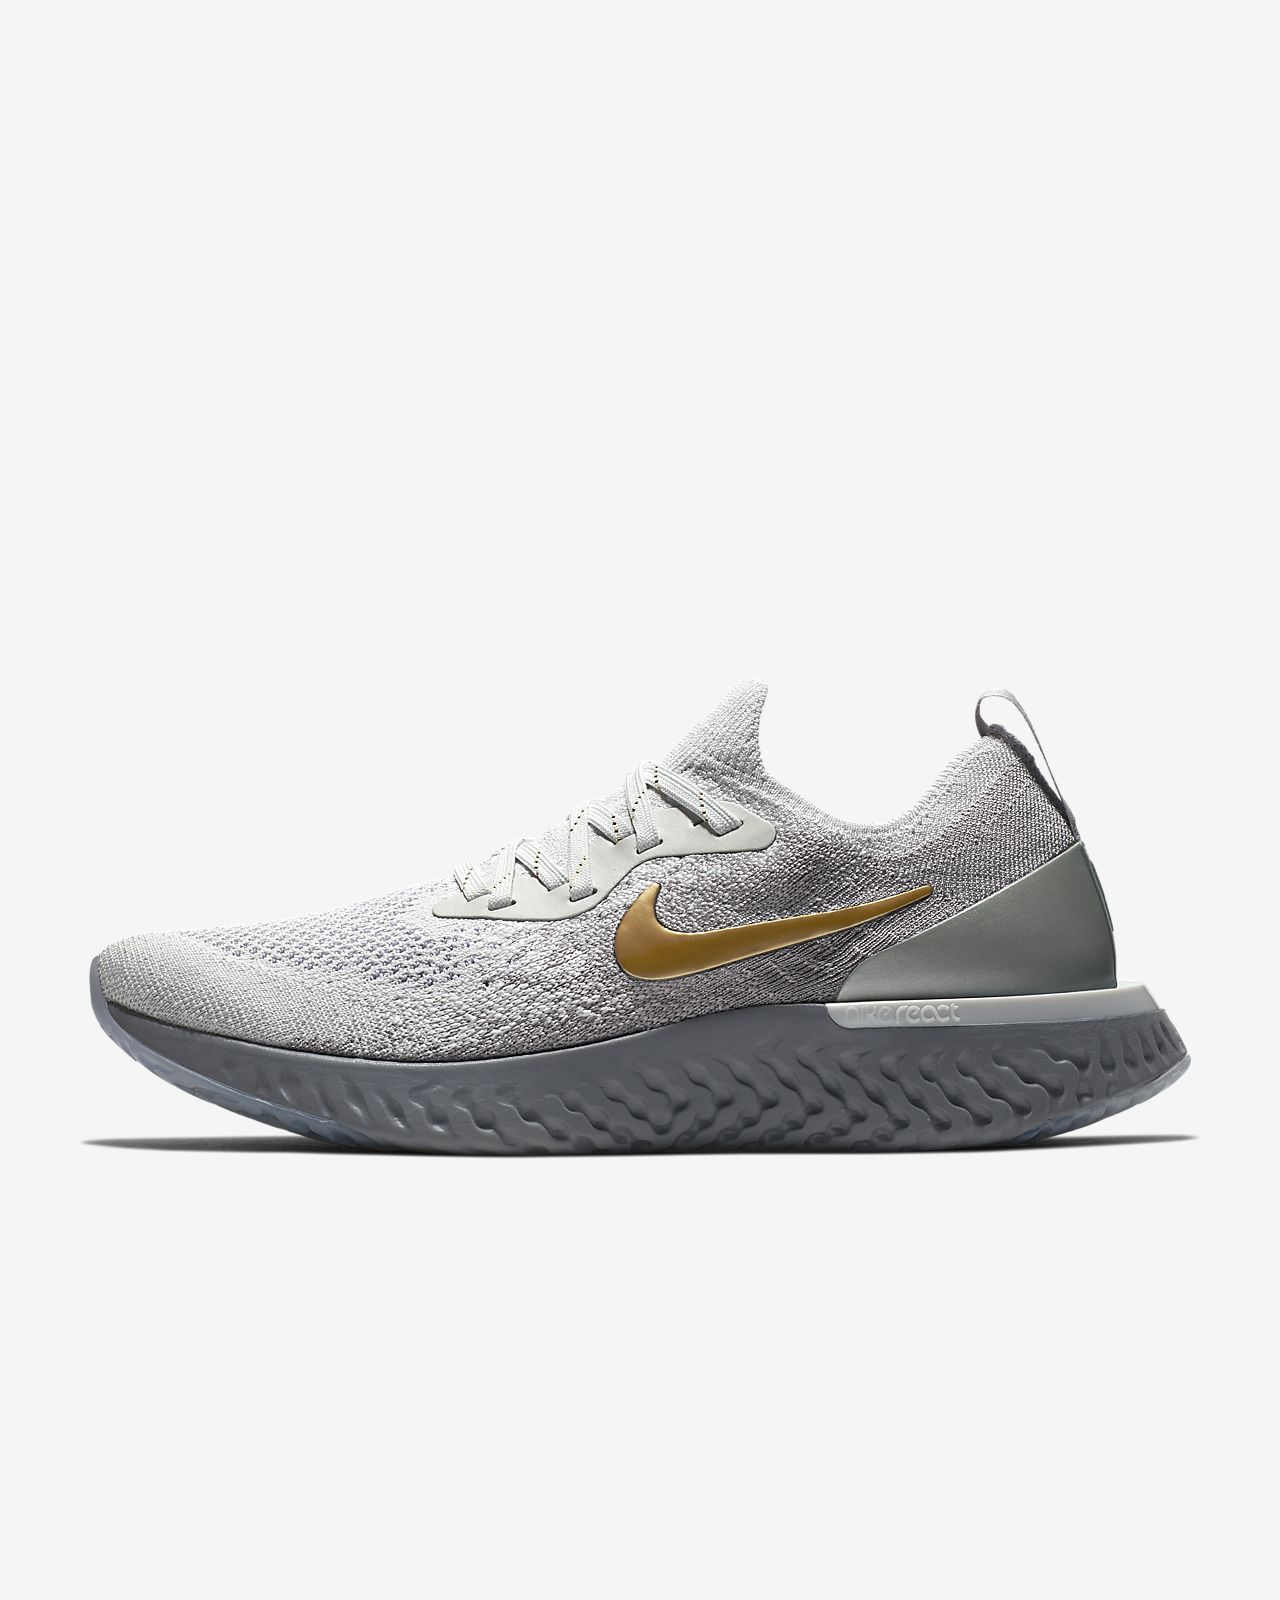 outlet store 7473e 76707 ... italy reduced nike epic react flyknit premium løpesko til dame 8f707  7f953 f9b98 369f5